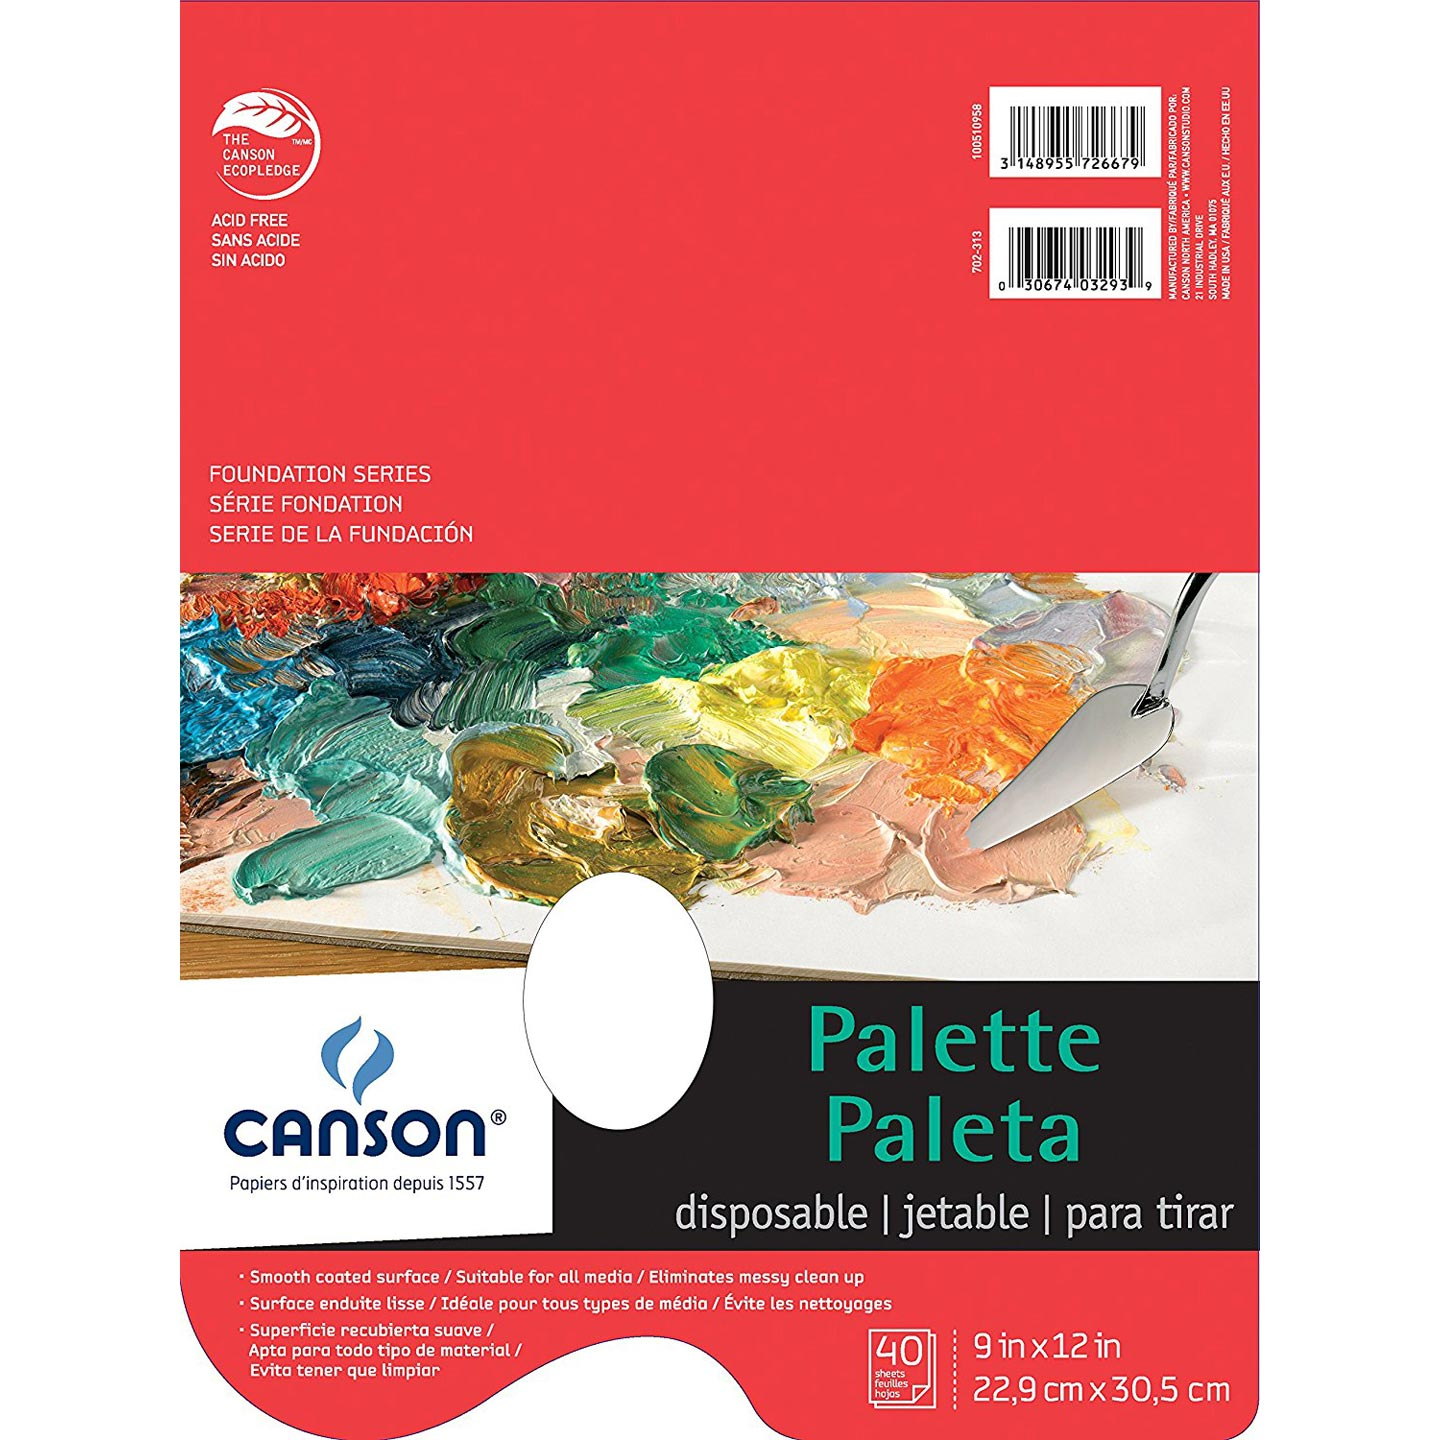 Canson Disposable Paper Pad Palette: White, 9 x 12 inches